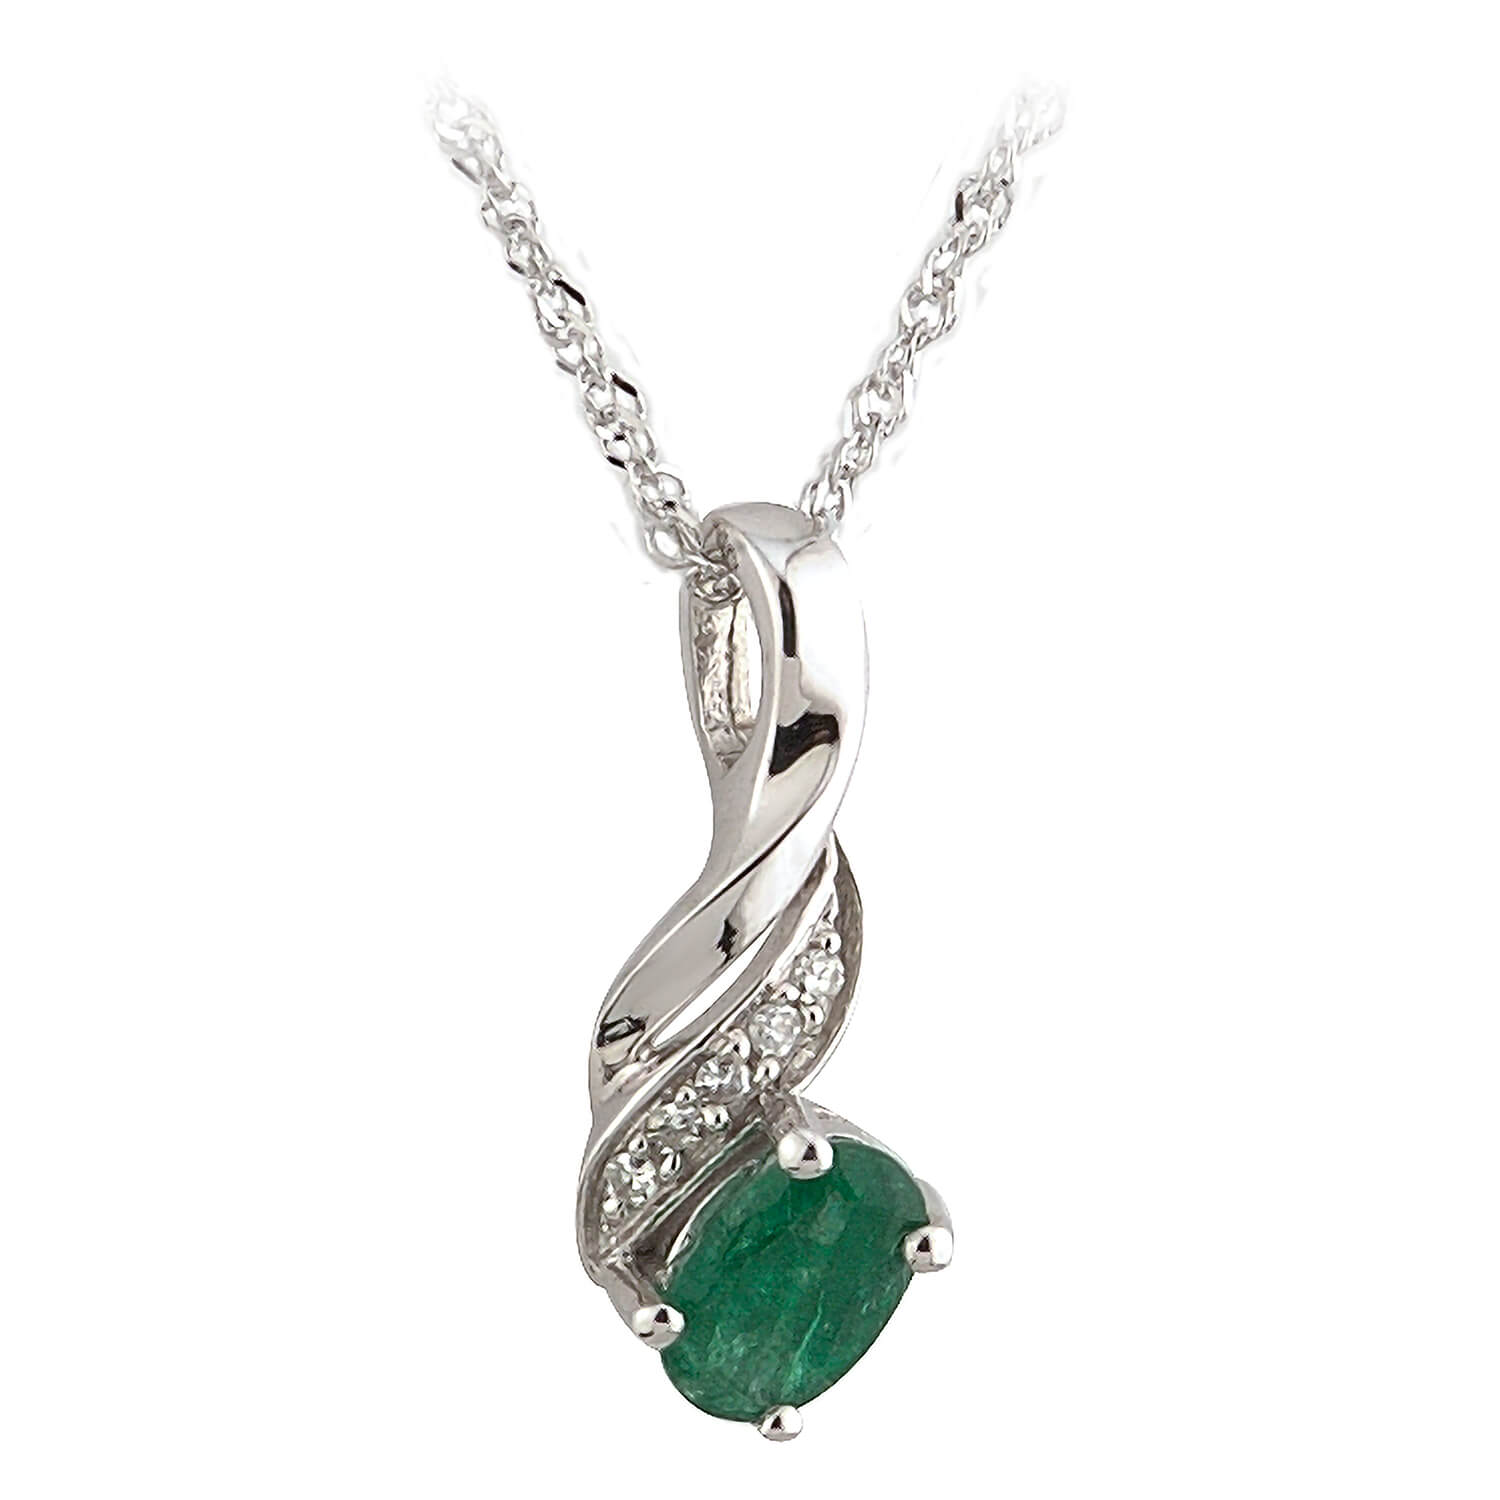 9ct white gold oval emerald and diamond-set pendant